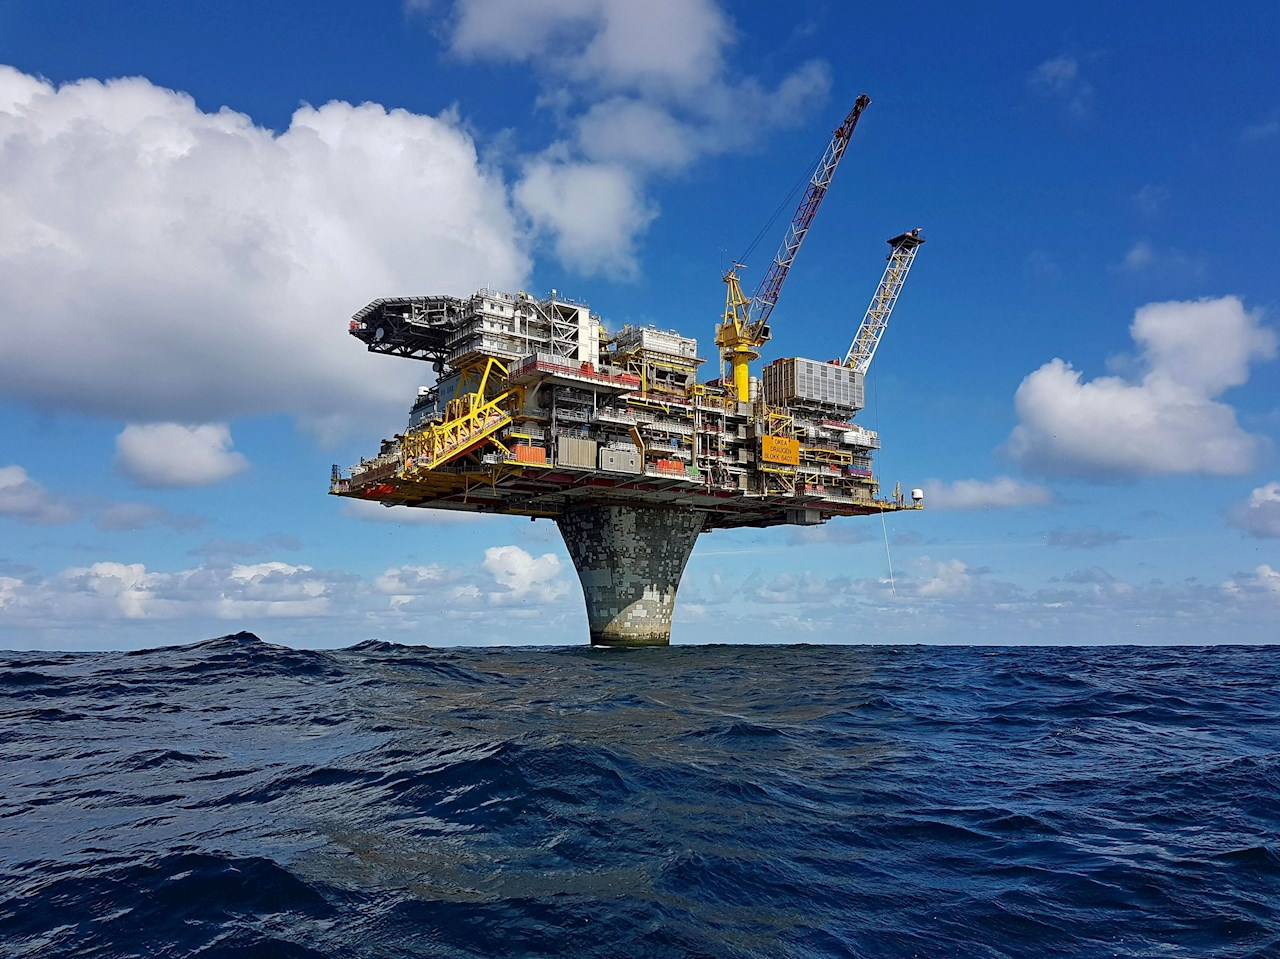 ABB and OKEA will accelerate value creation through innovative and agile business models aimed at achieving substantial productivity gains for OKEA. Photo credit: Draugen oil platform © OKEA